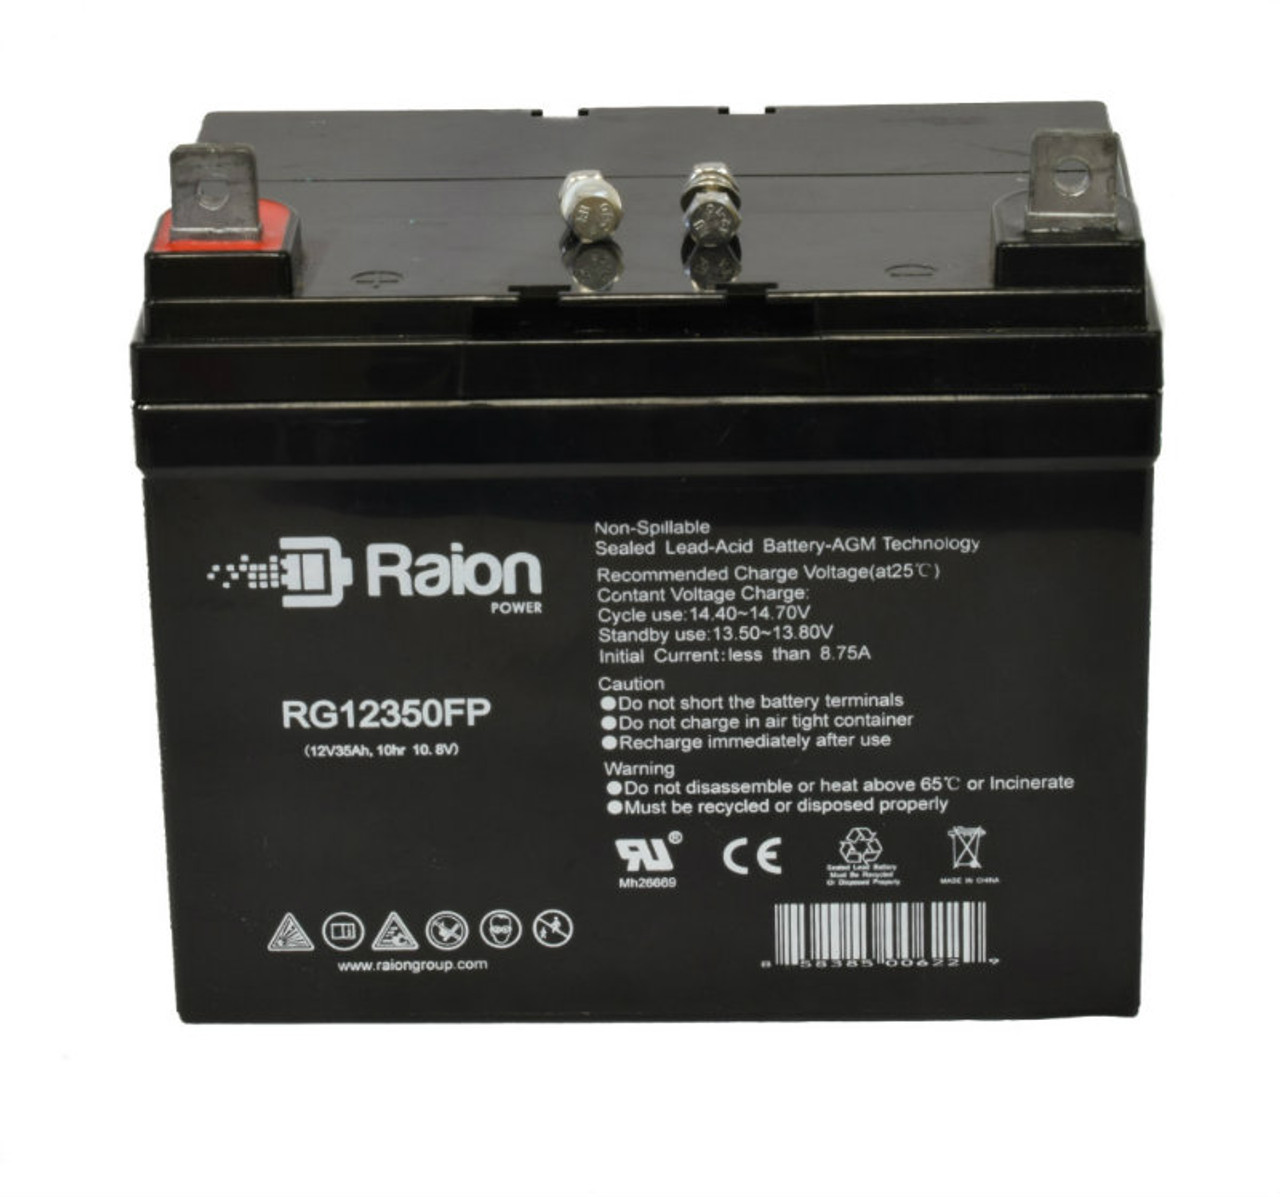 RG12350FP Sealed Lead Acid Battery Pack For Shoprider TE-889DX Mobility Scooter